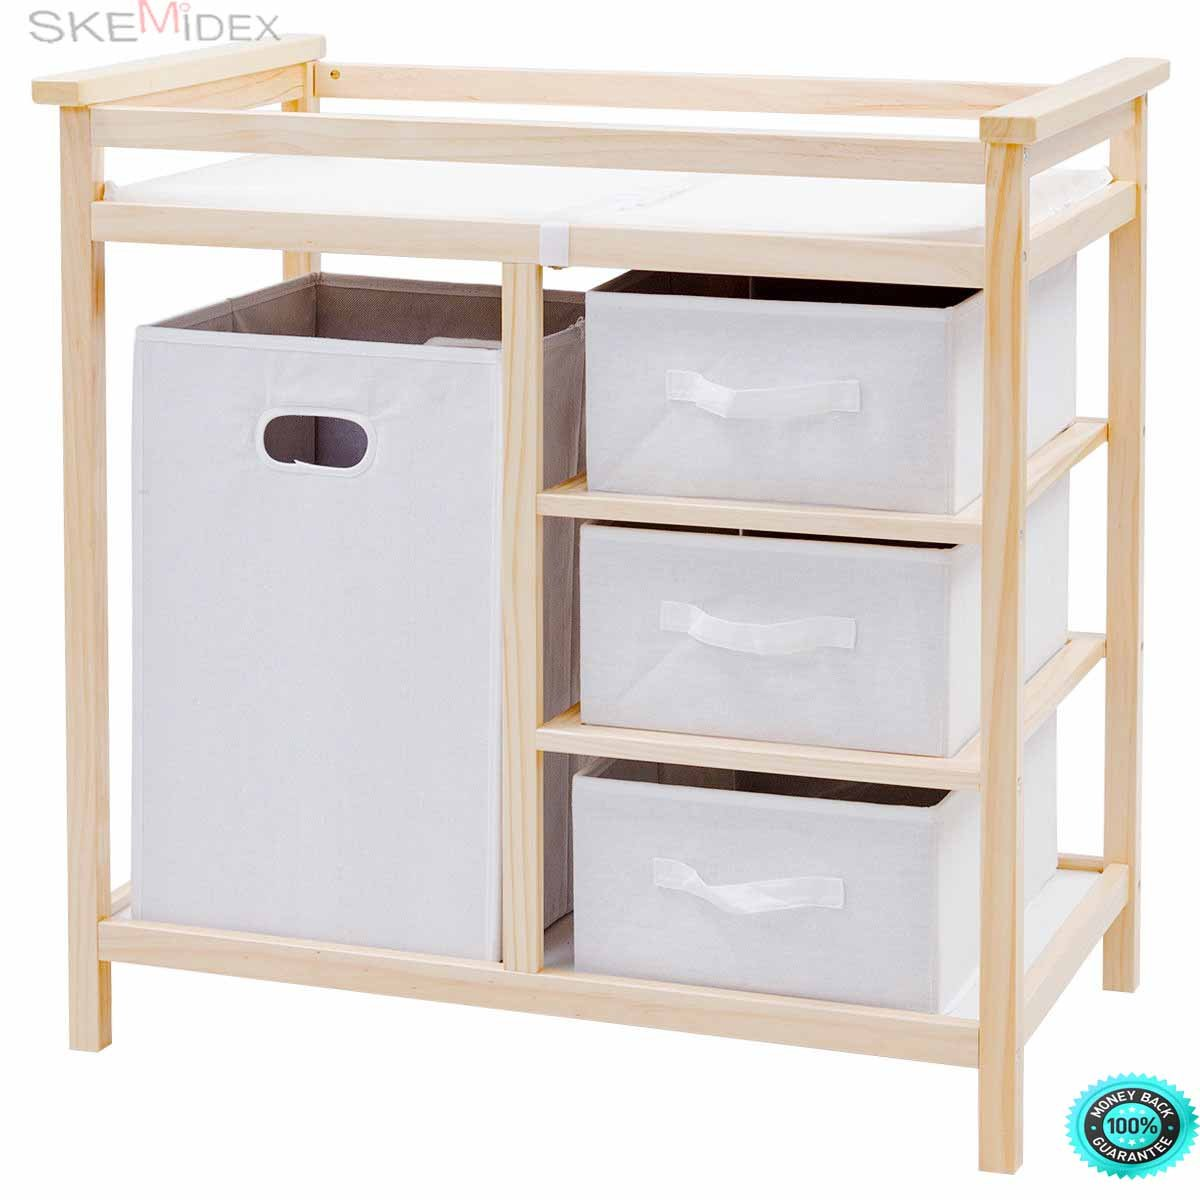 SKEMiDEX---Natural Infant Baby Changing Table w/3 Basket Hamper Diaper Storage Nursery New This Baby Changing Table keeps everything tidy and concealed for a clean look in the nursery large hamper